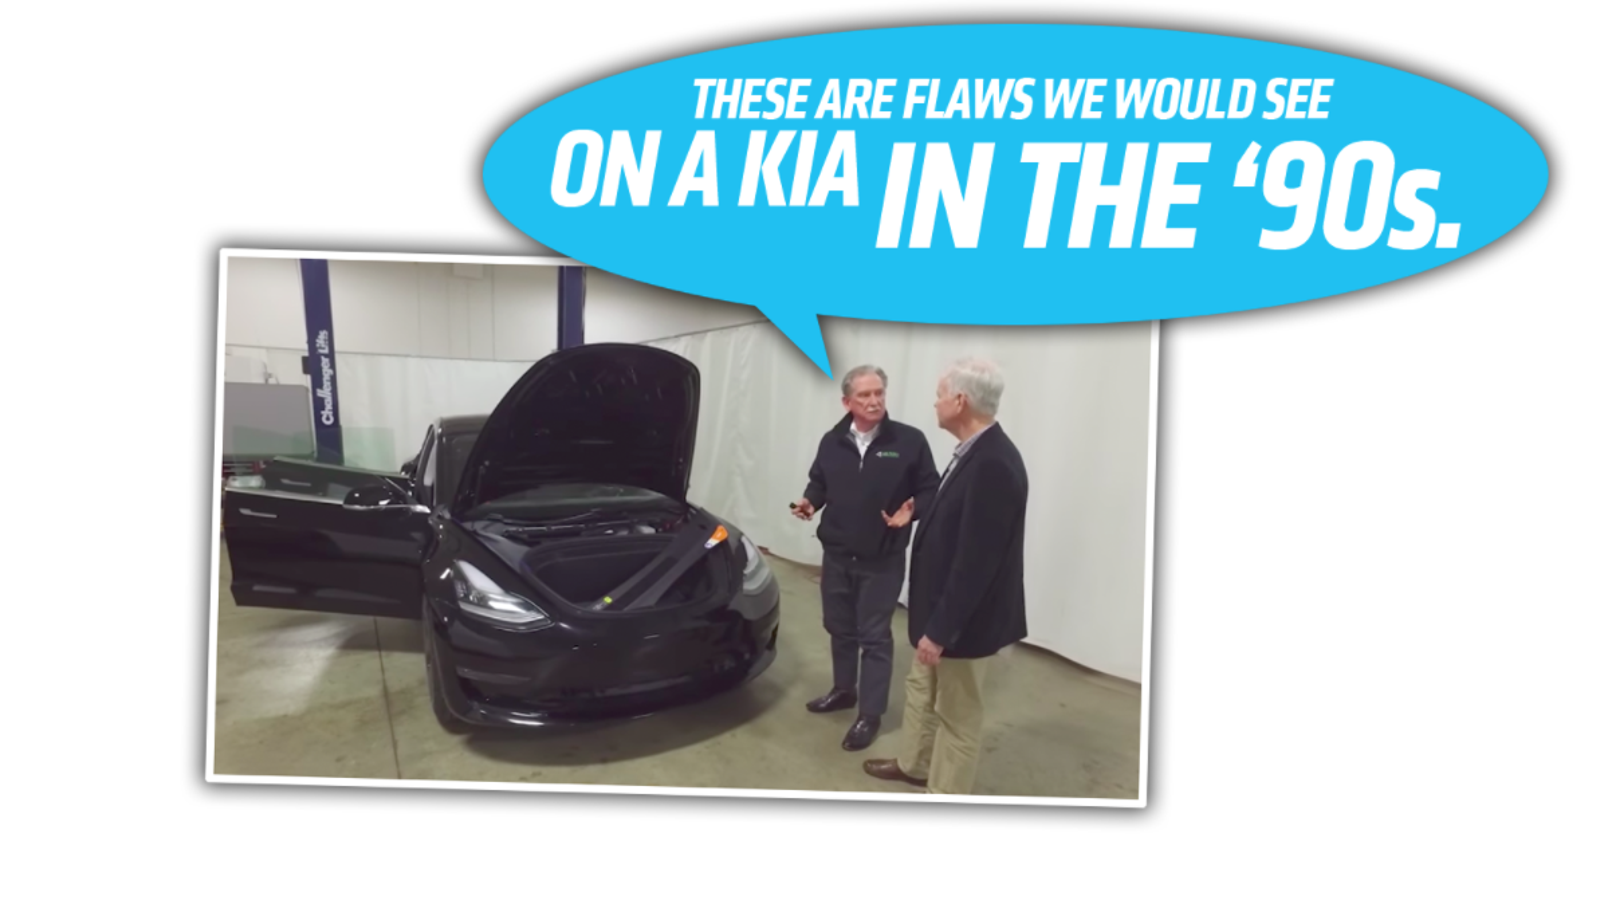 Tesla Model 3 Teardown By Engineering Firm Reveals Quality Flaws Car Diagram Exterior Like A Kia In The 90s